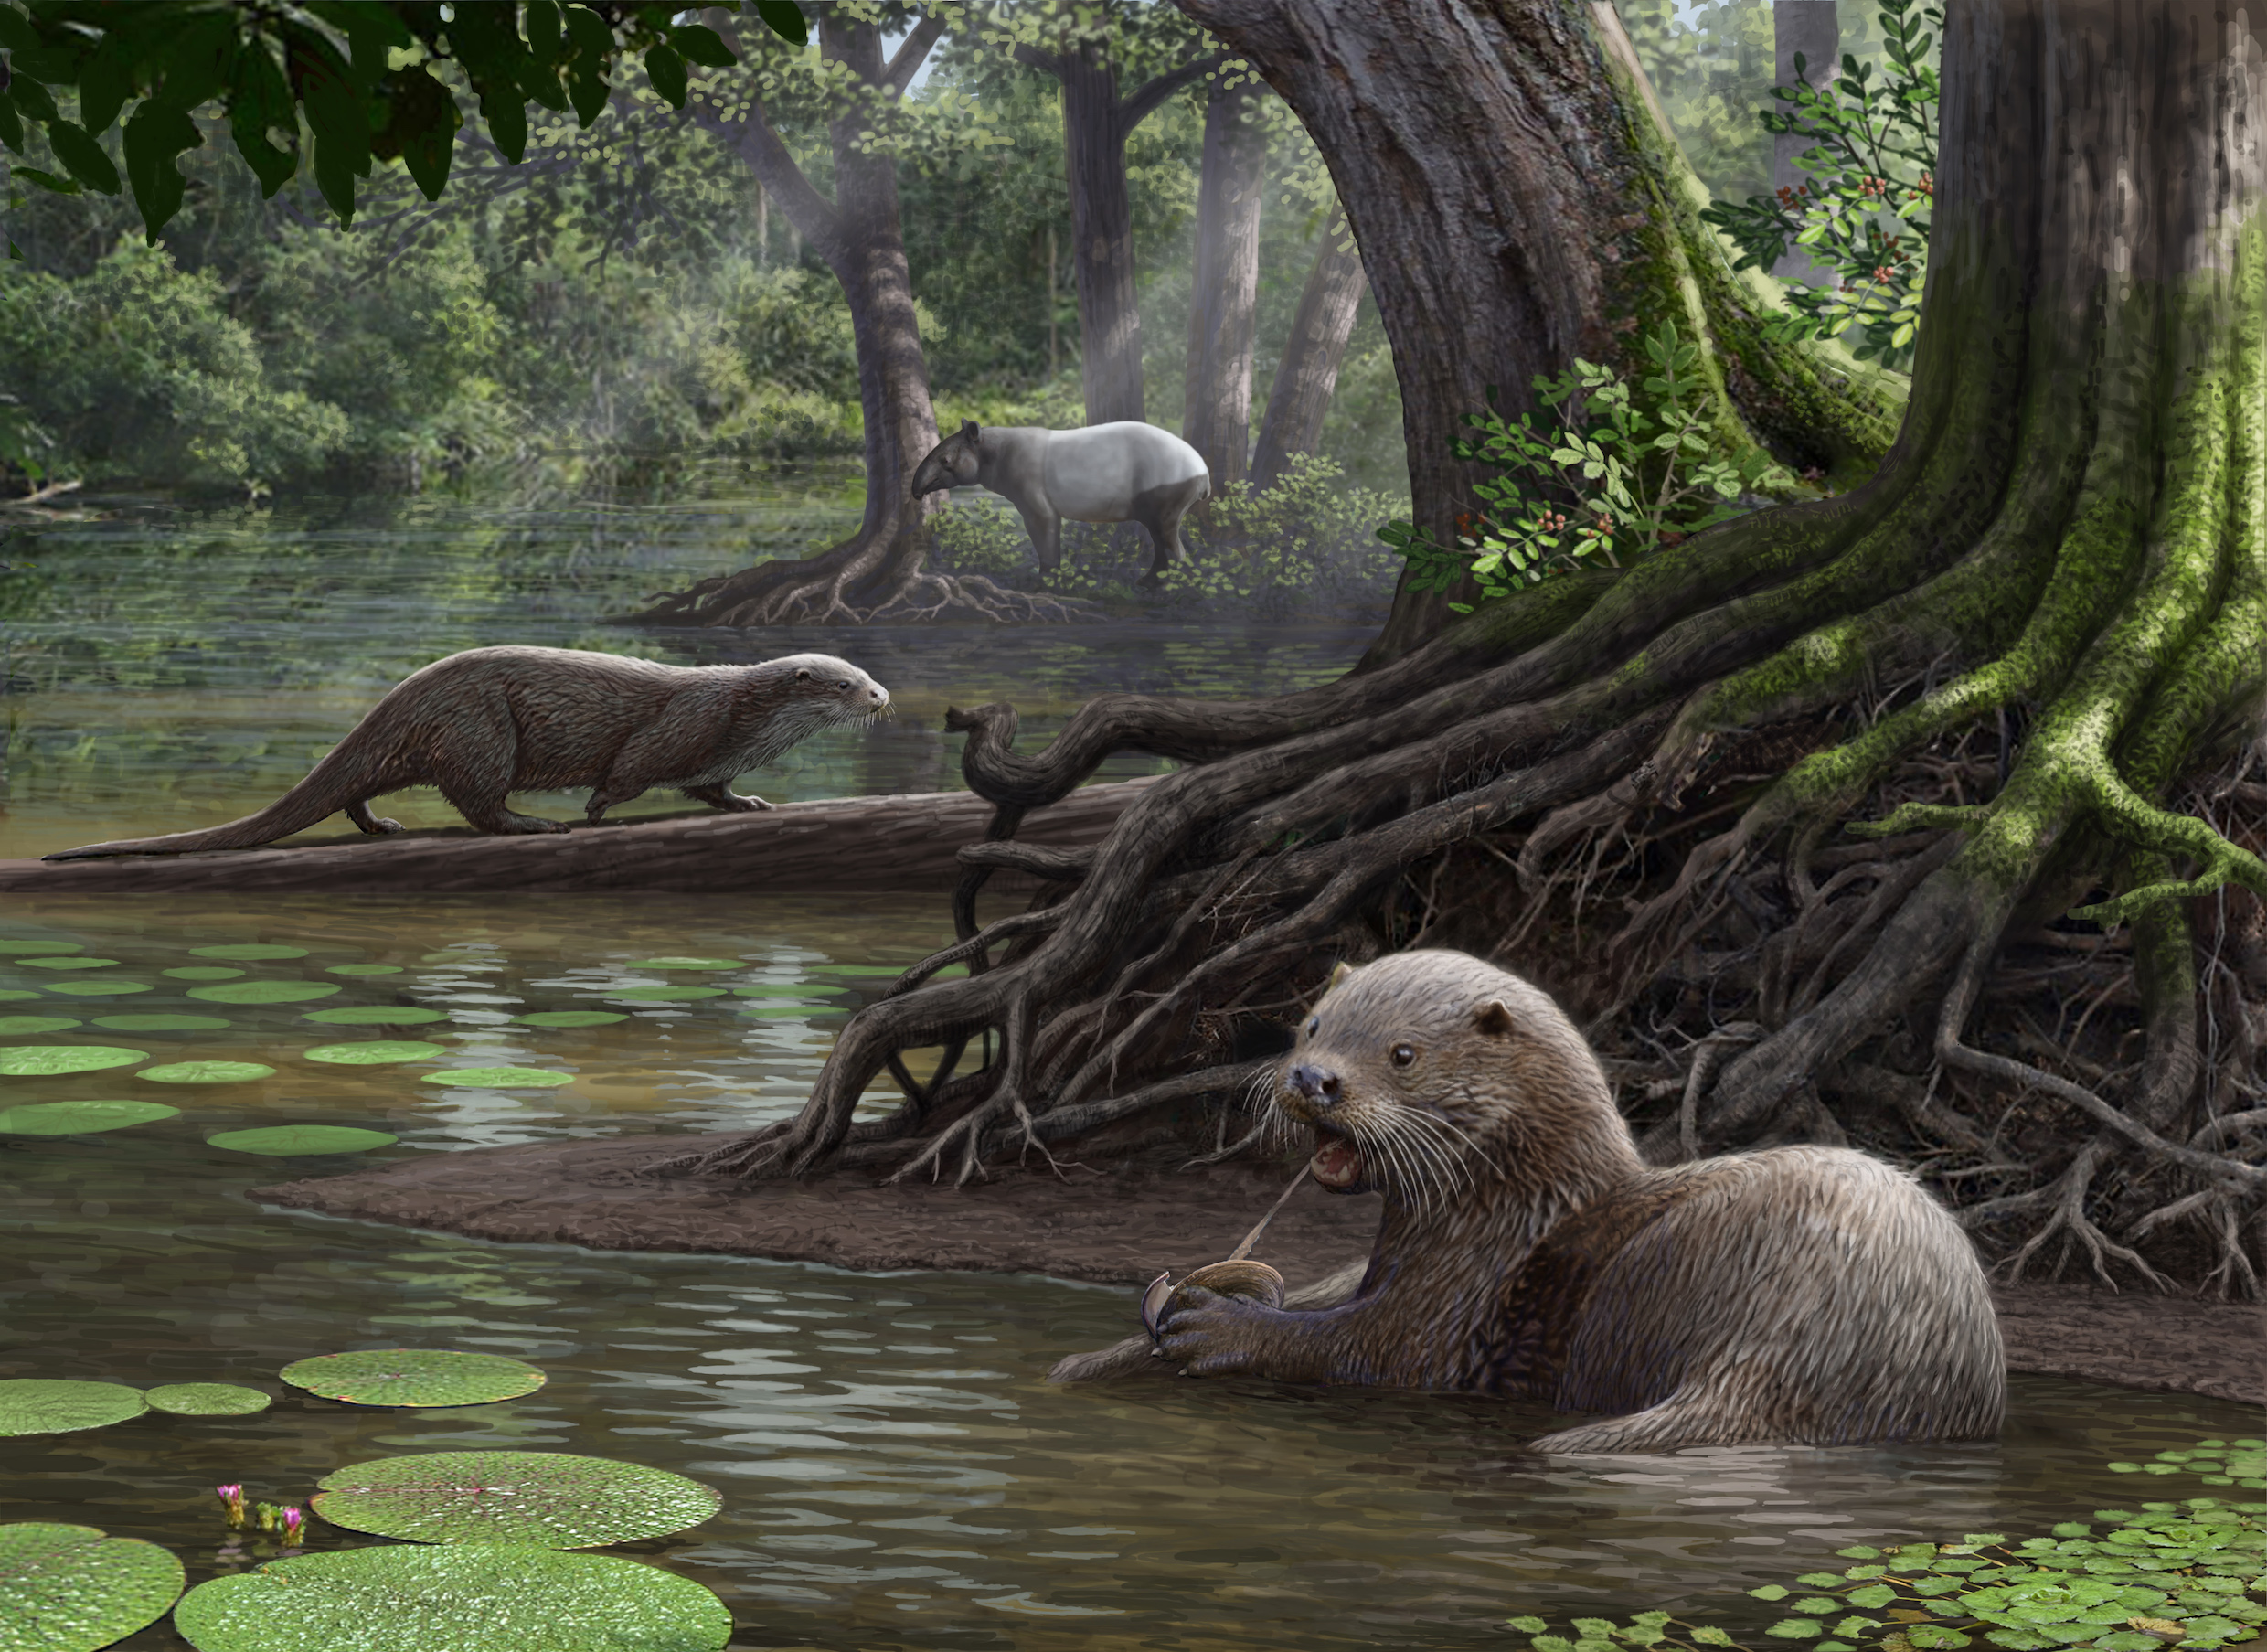 Researchers believe that an enormous otter which lived about 6 million years ago may have been a top predator in its day.